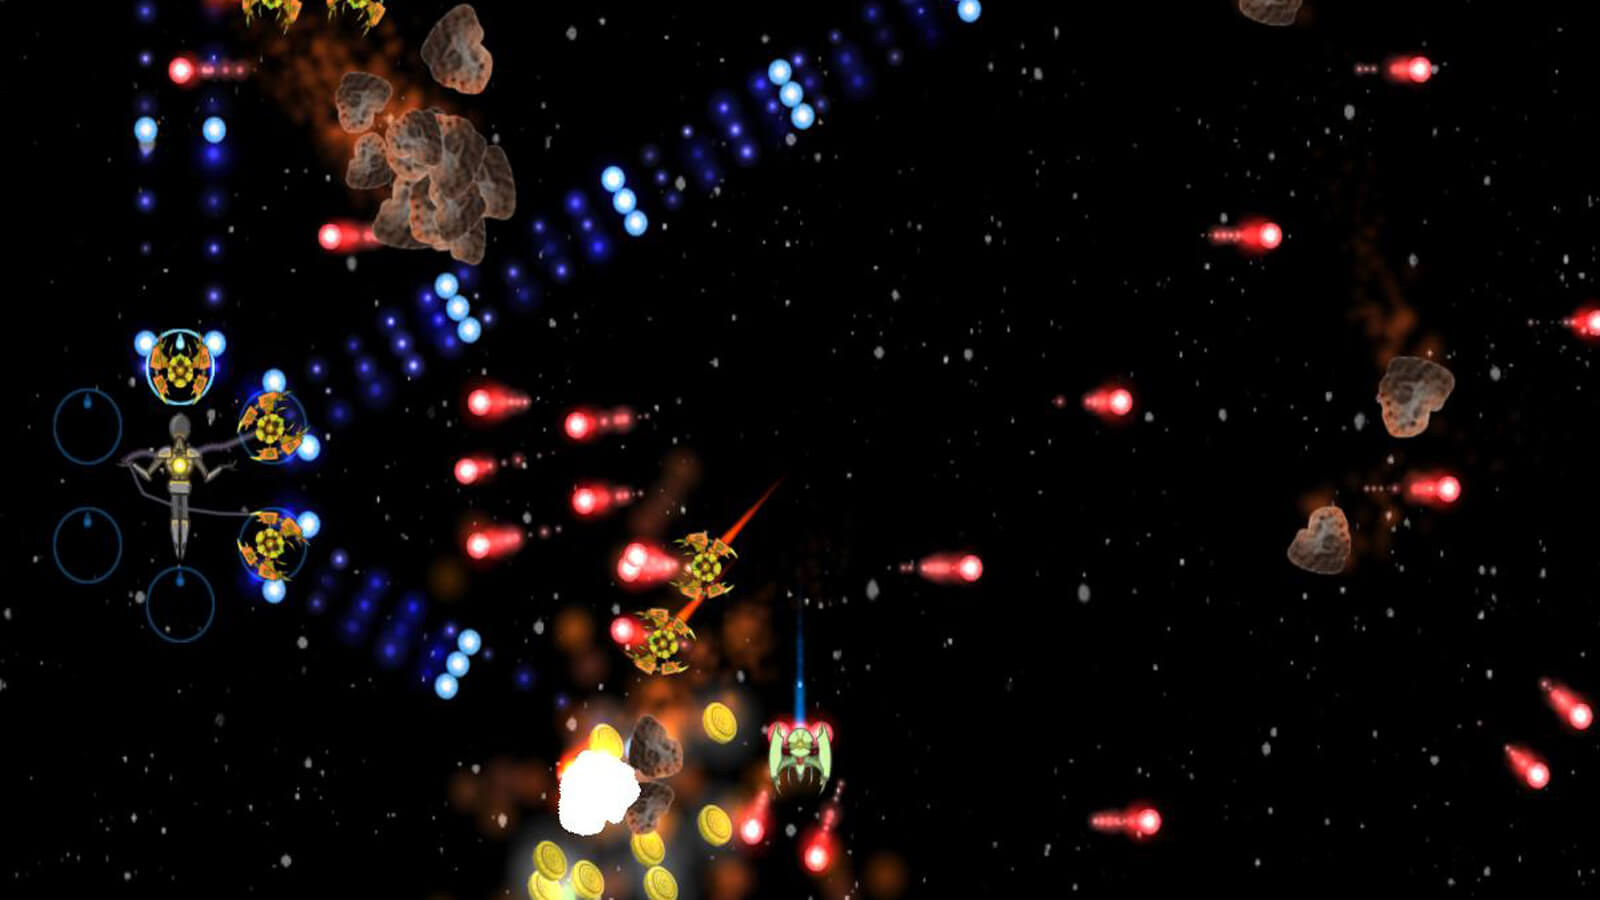 A humanoid controlling three ships shoots at enemy ships with blue beams.